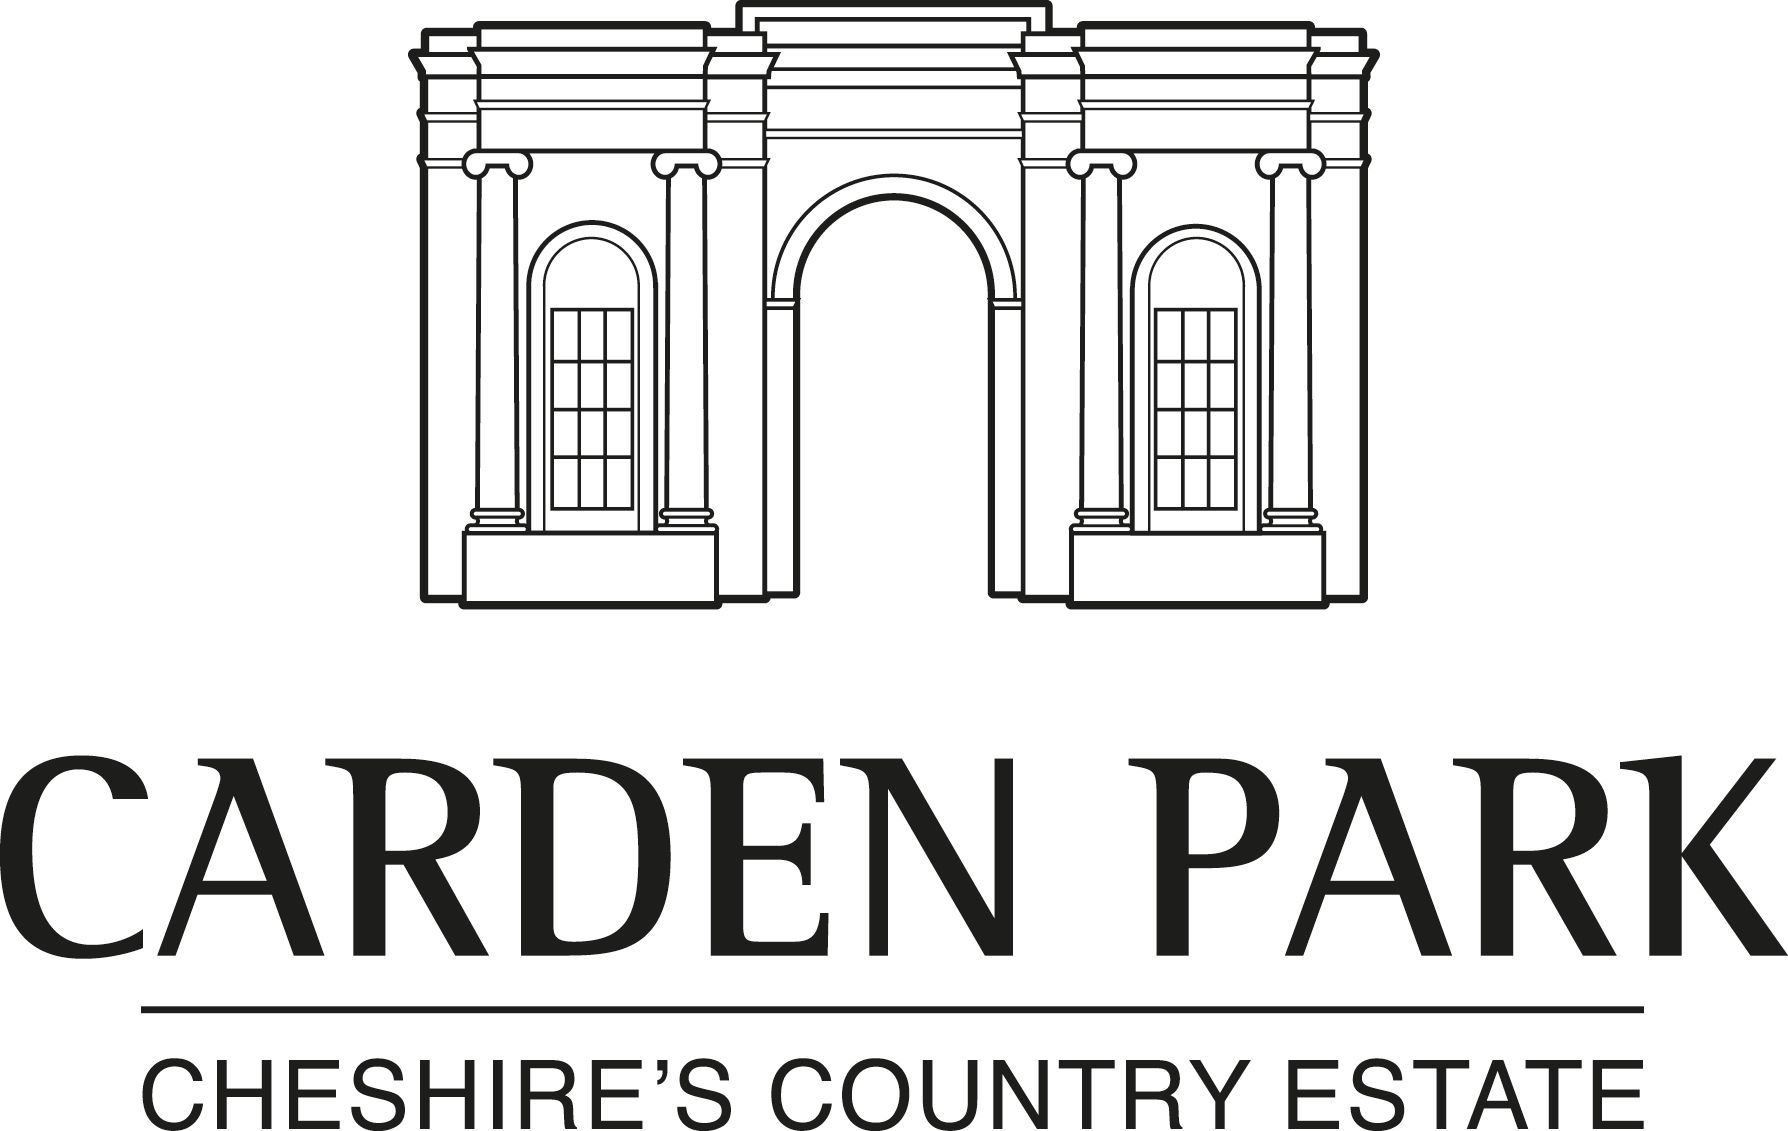 Carden Park Hotel – Cheshire's Country Estate